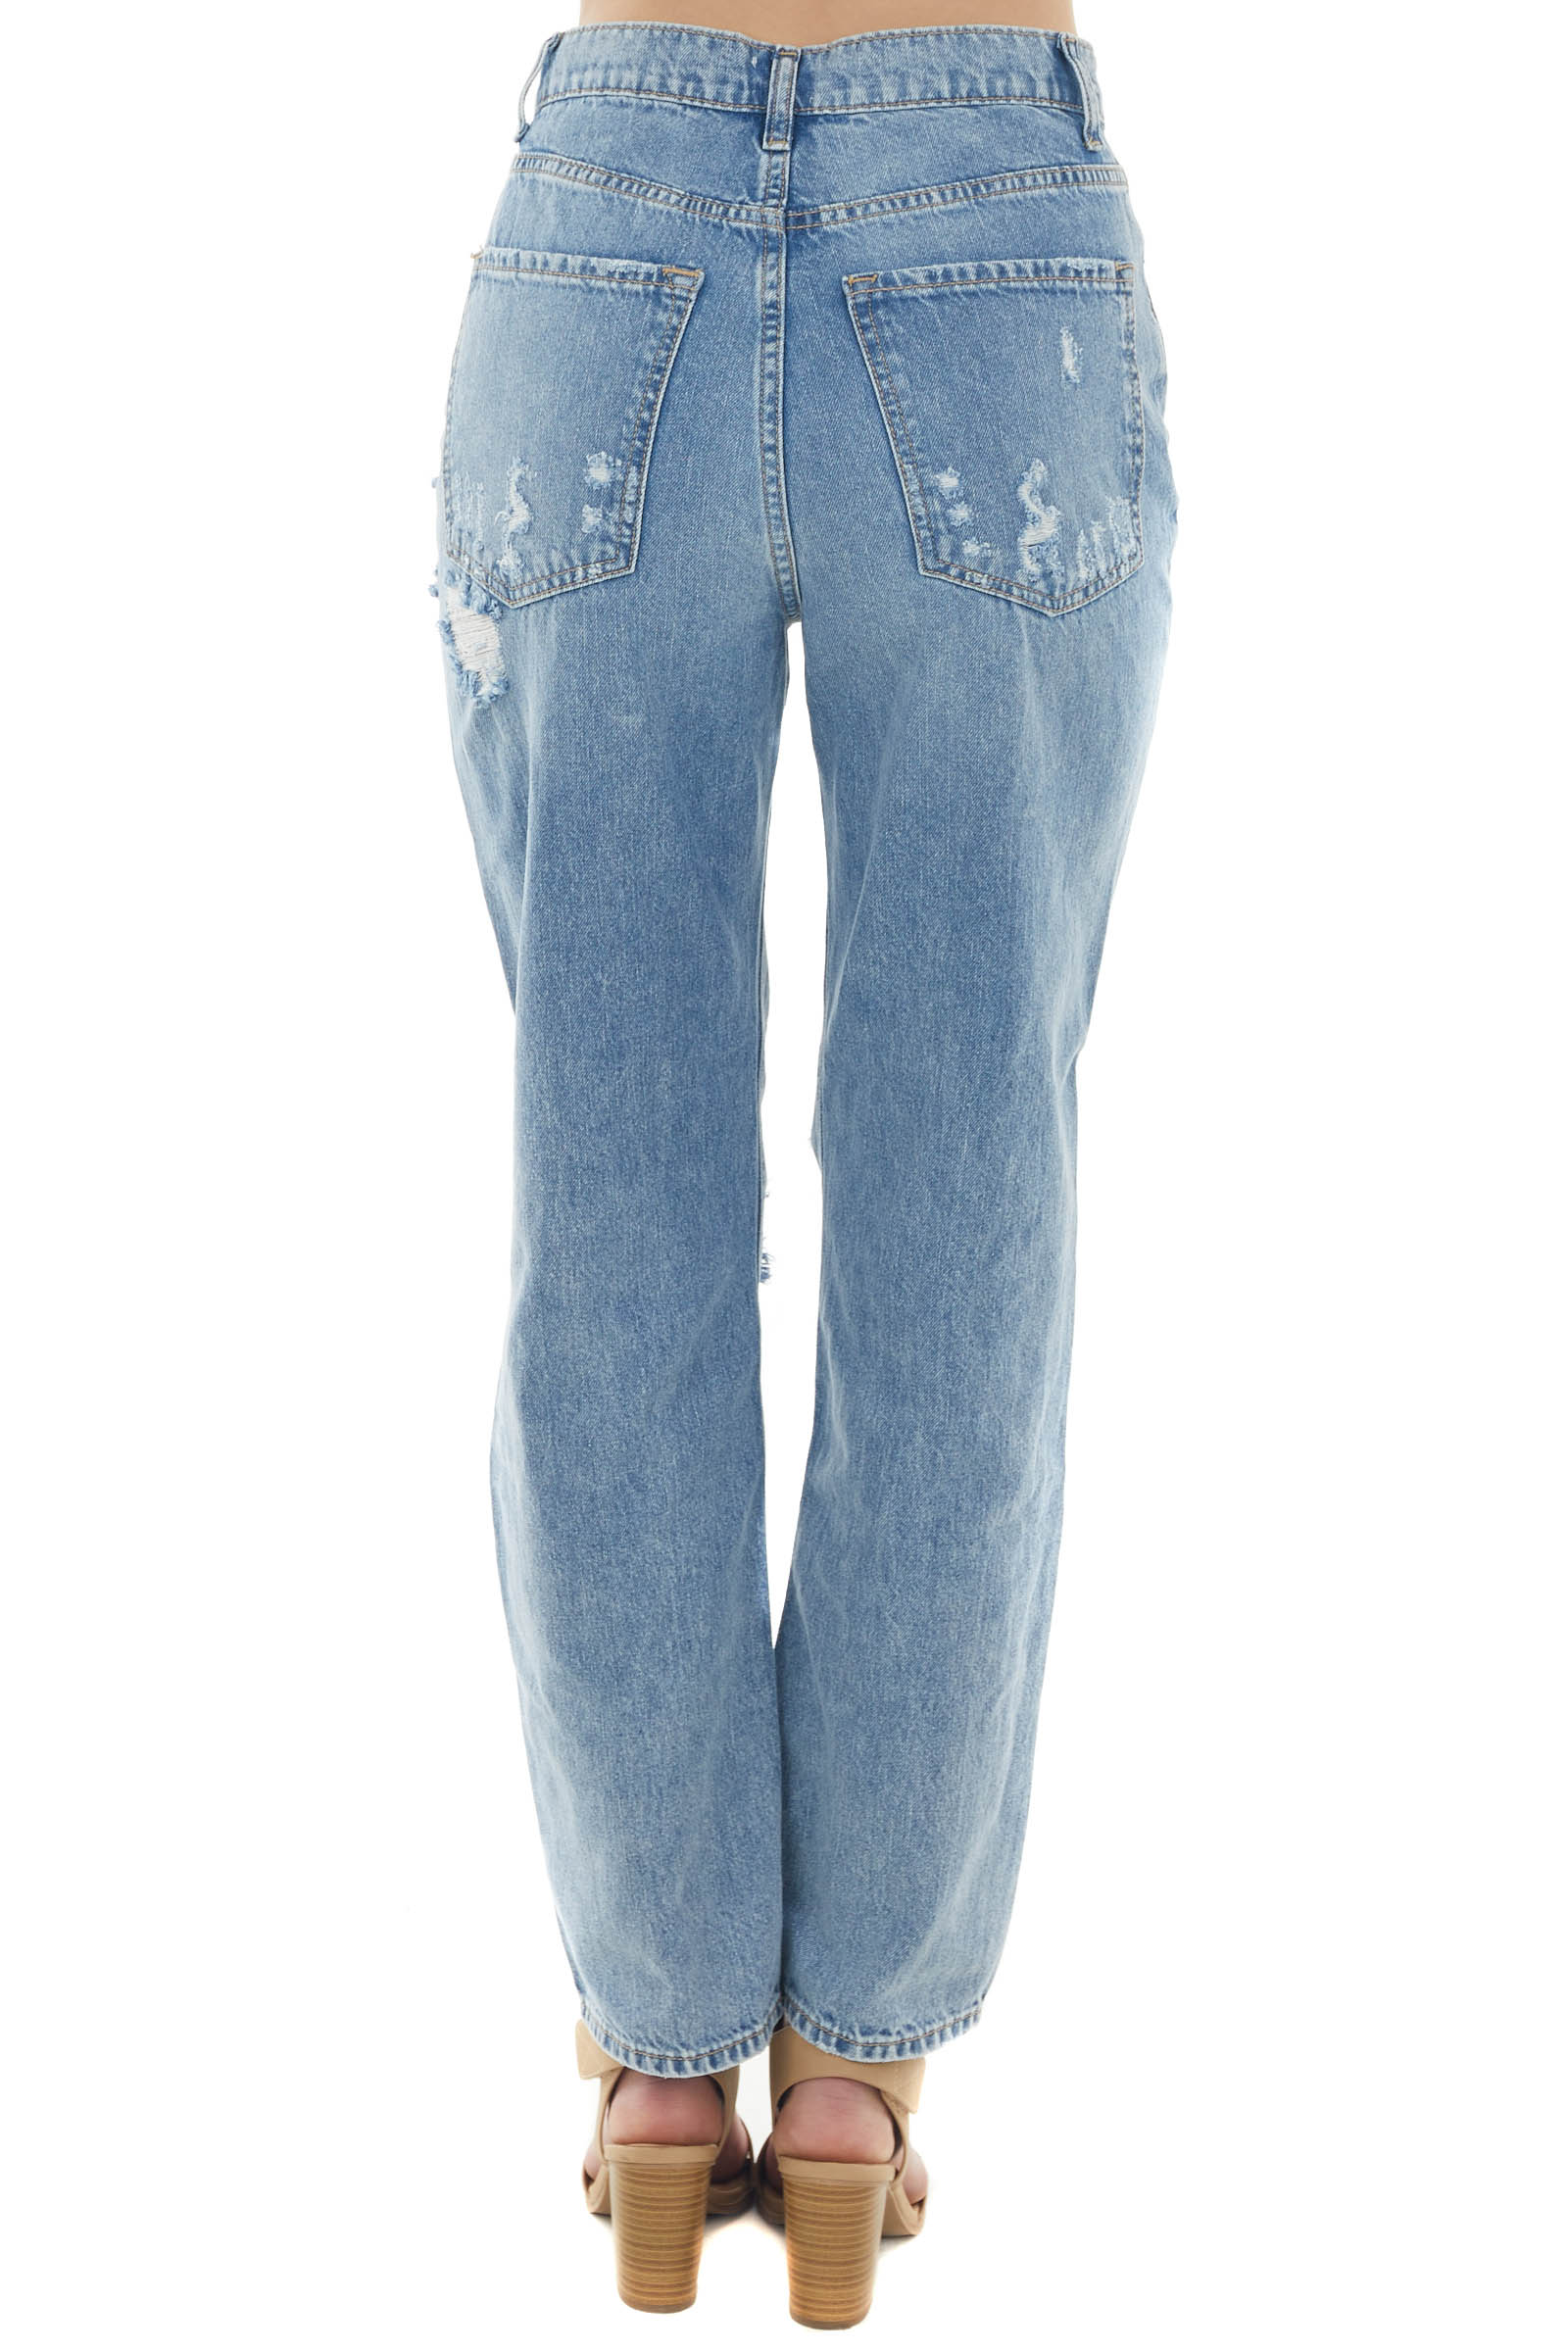 Medium High Rise Destroyed Relaxed 90s Jeans